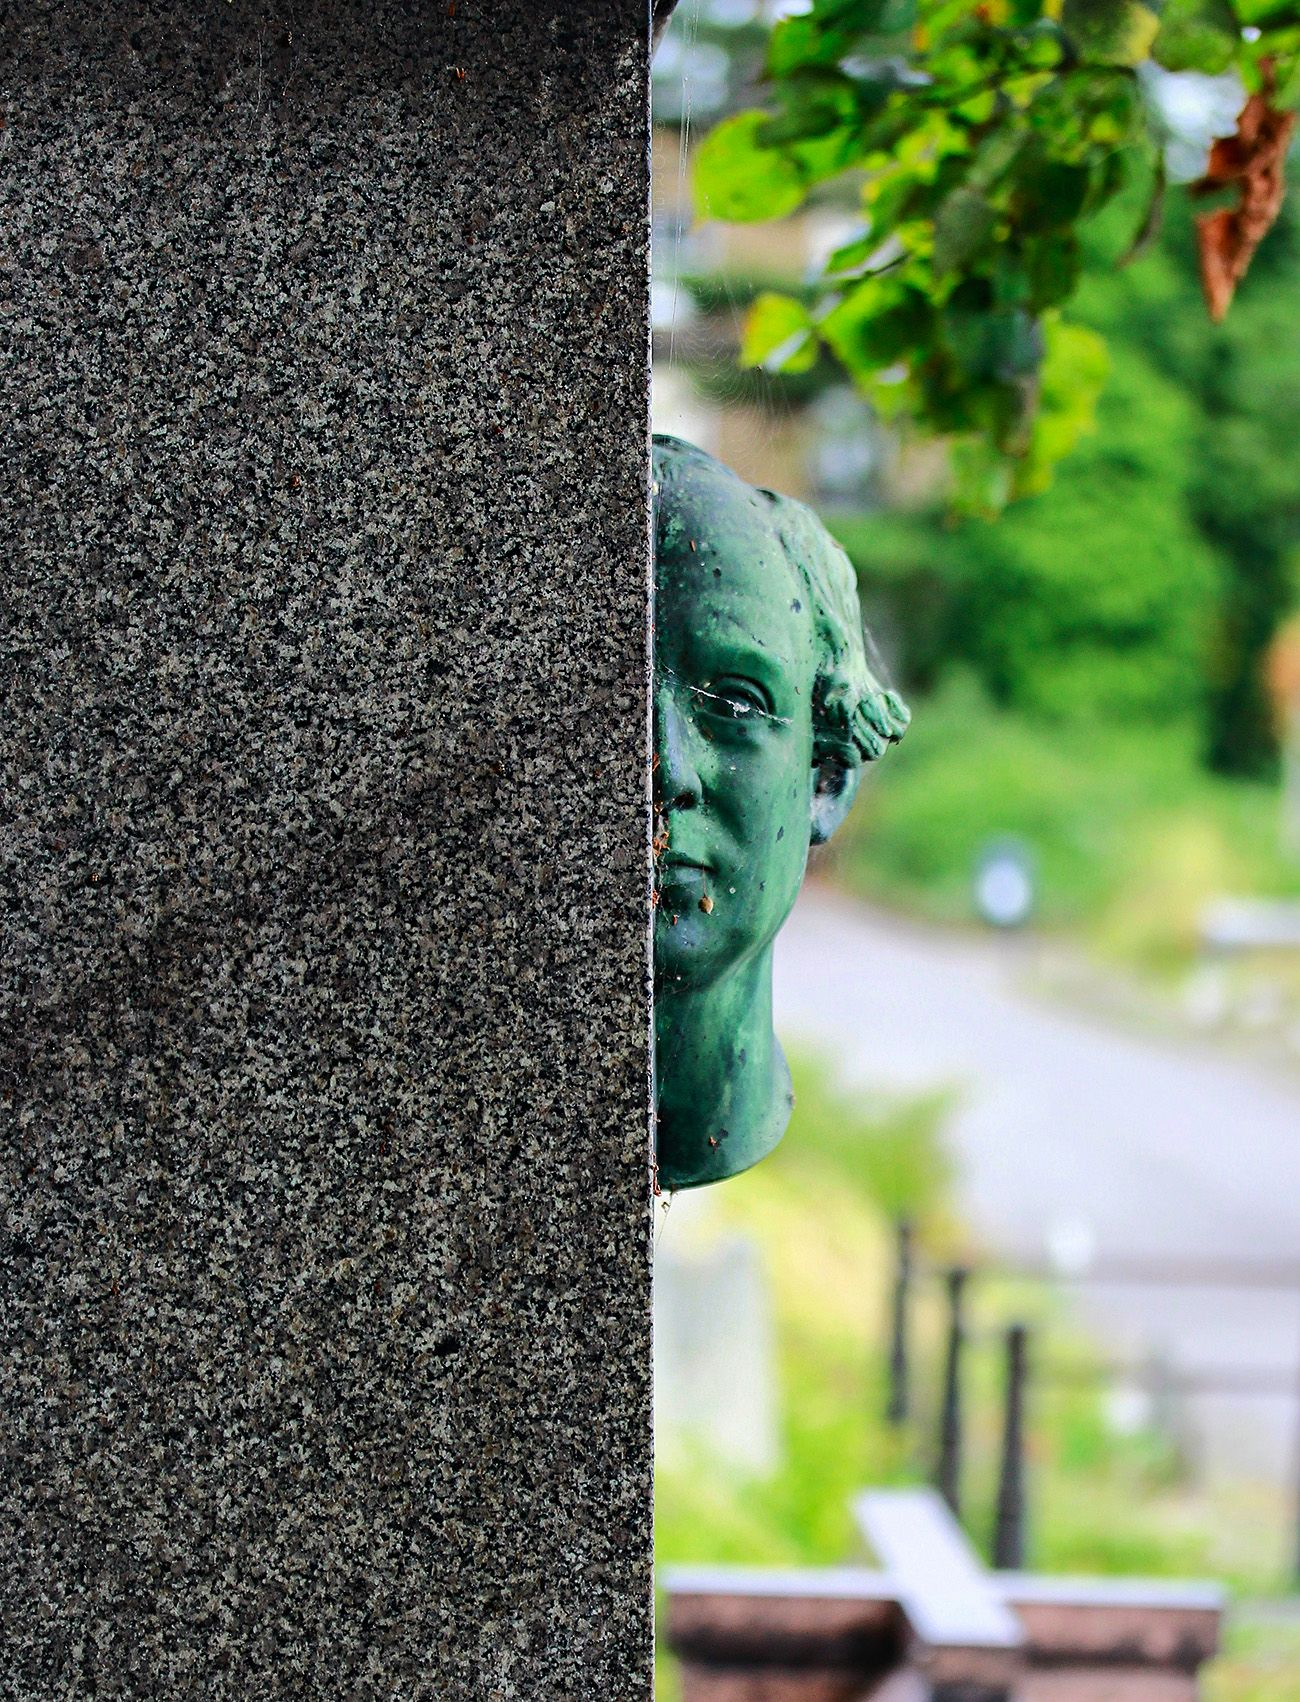 Brompton Cemetery in London. Detail of a Memorial Stone